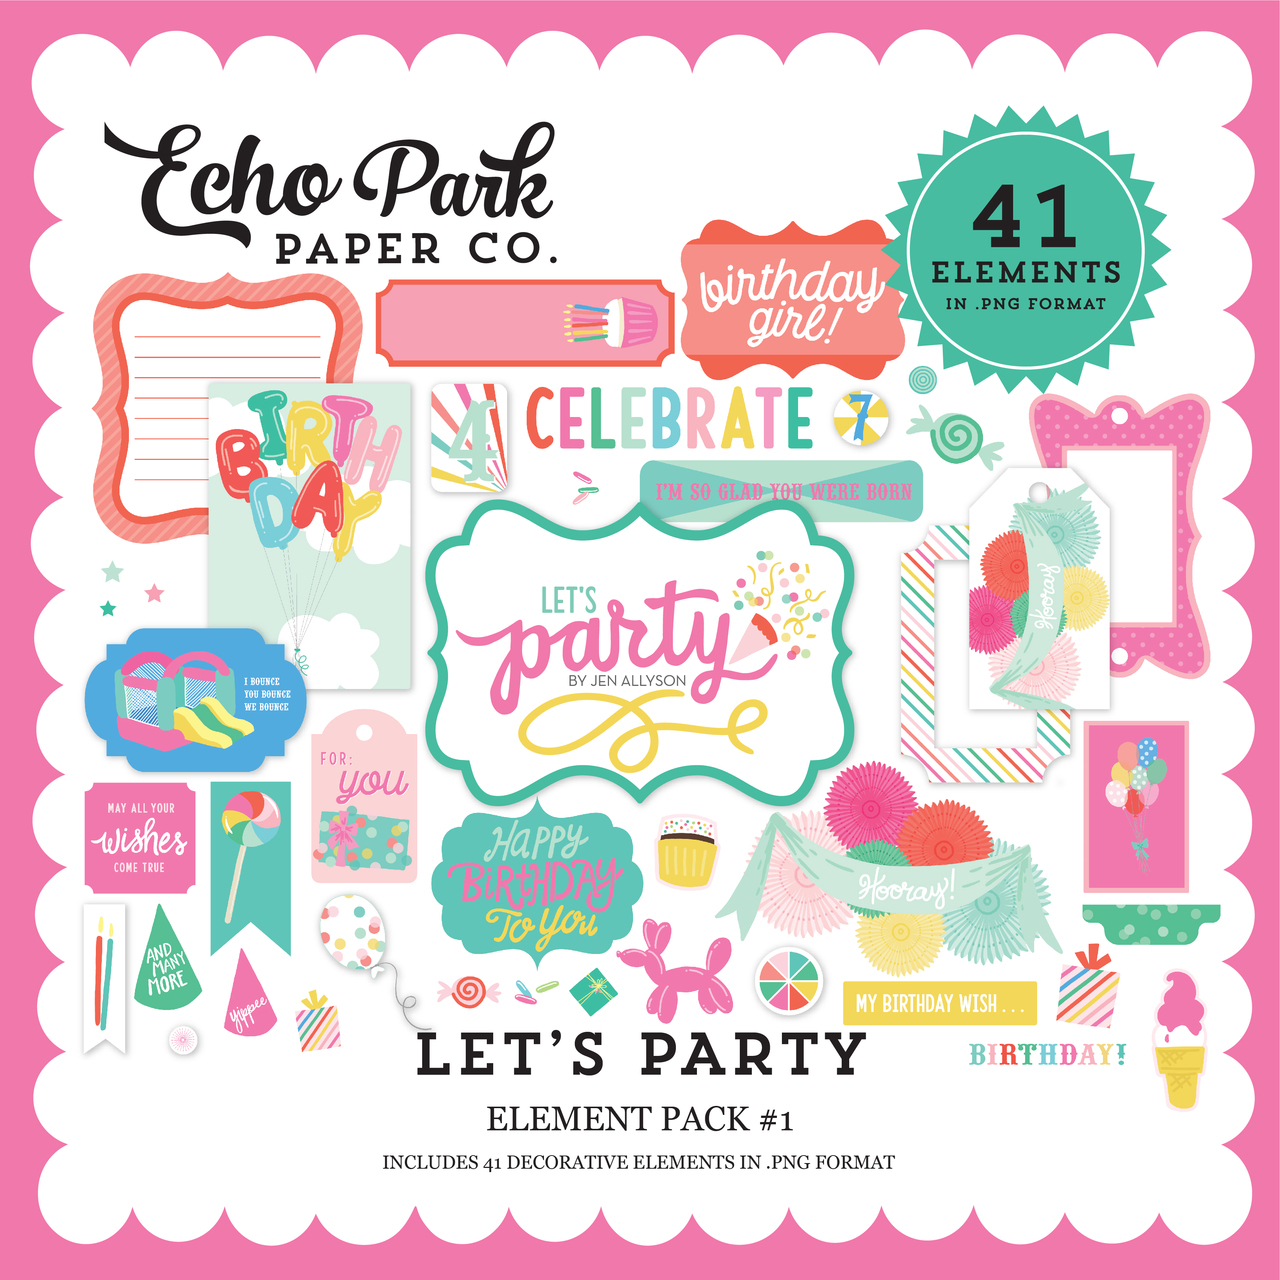 Let's Party Element Pack #1